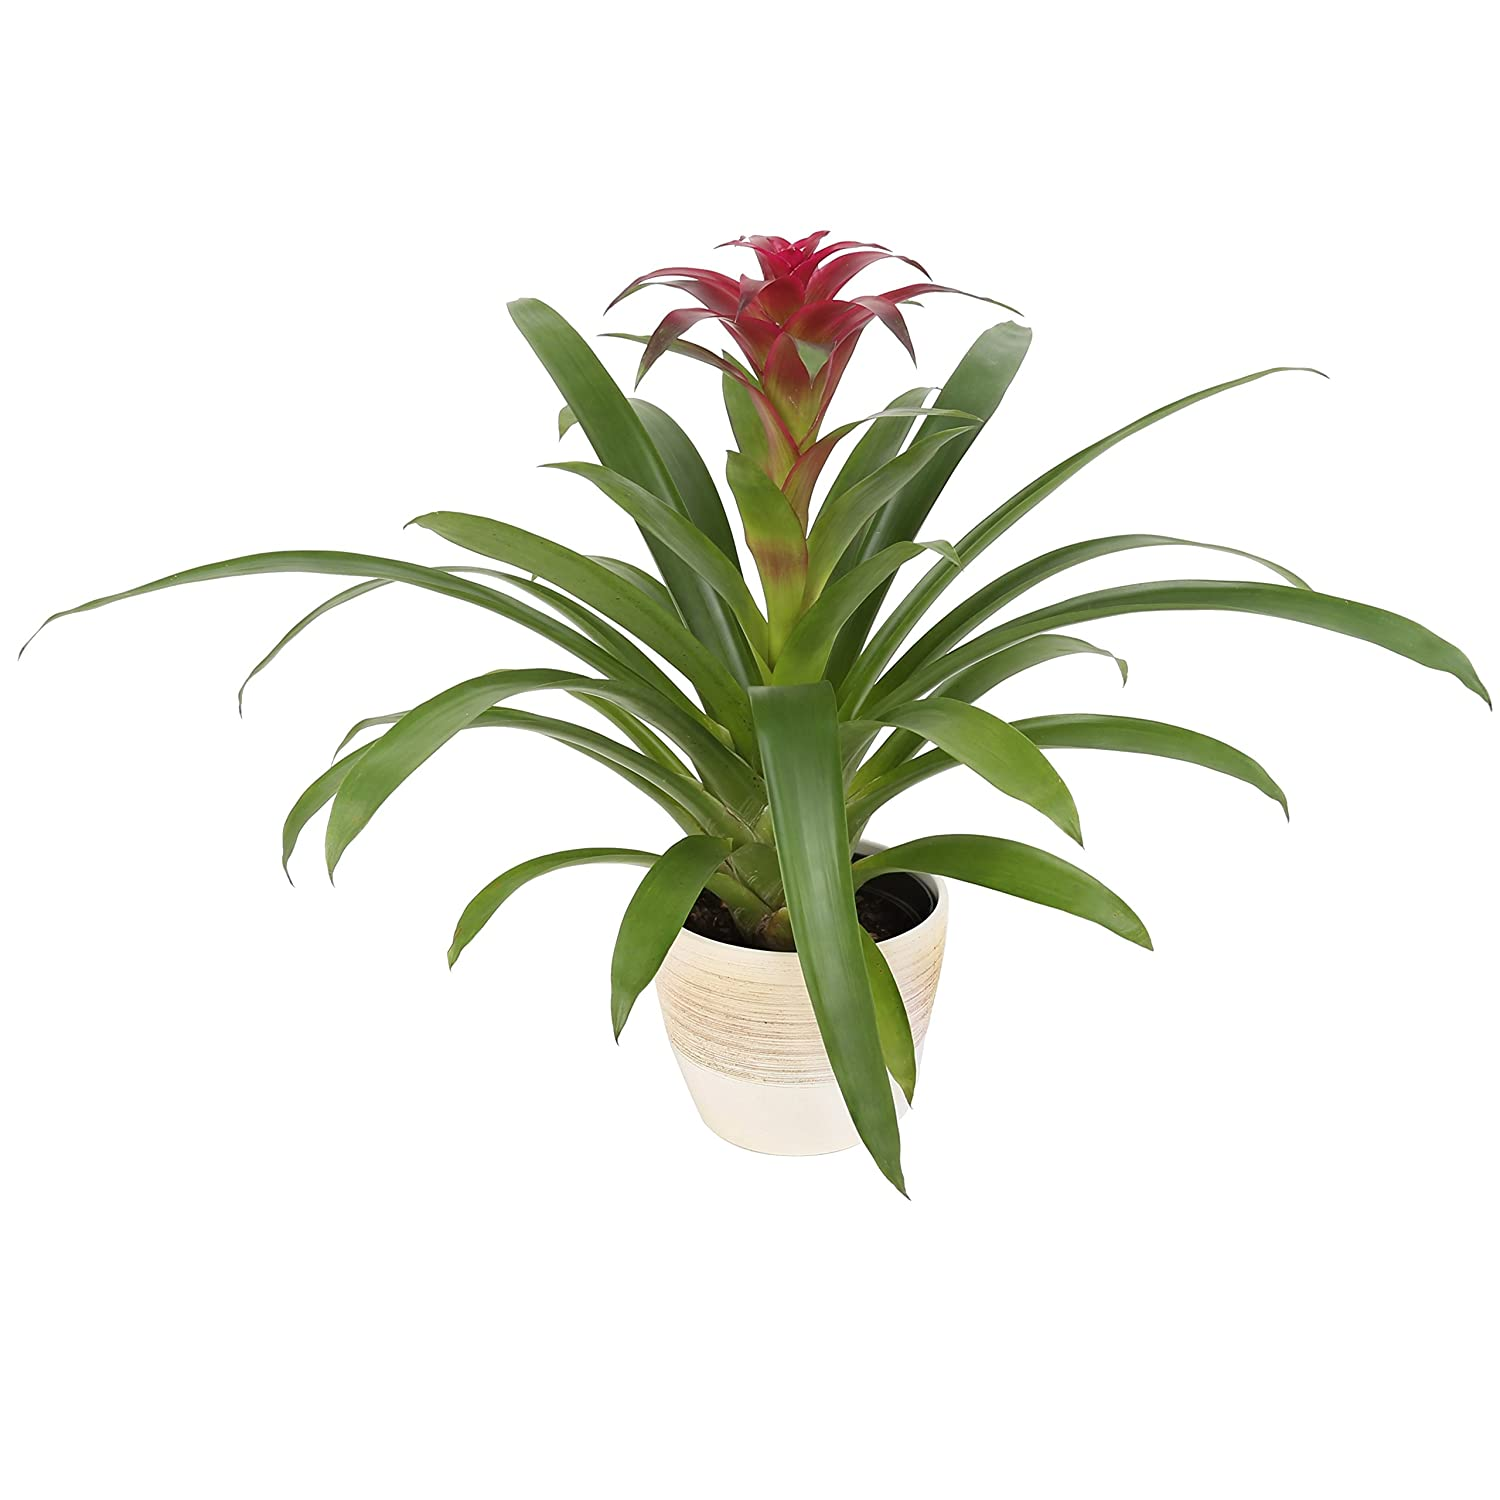 Costa Farms Live Indoor Blooming Pink Bromeliad in 6-Inch Scheurich Cream Home D/écor-Ready Planter Great Gift 20-Inches Tall